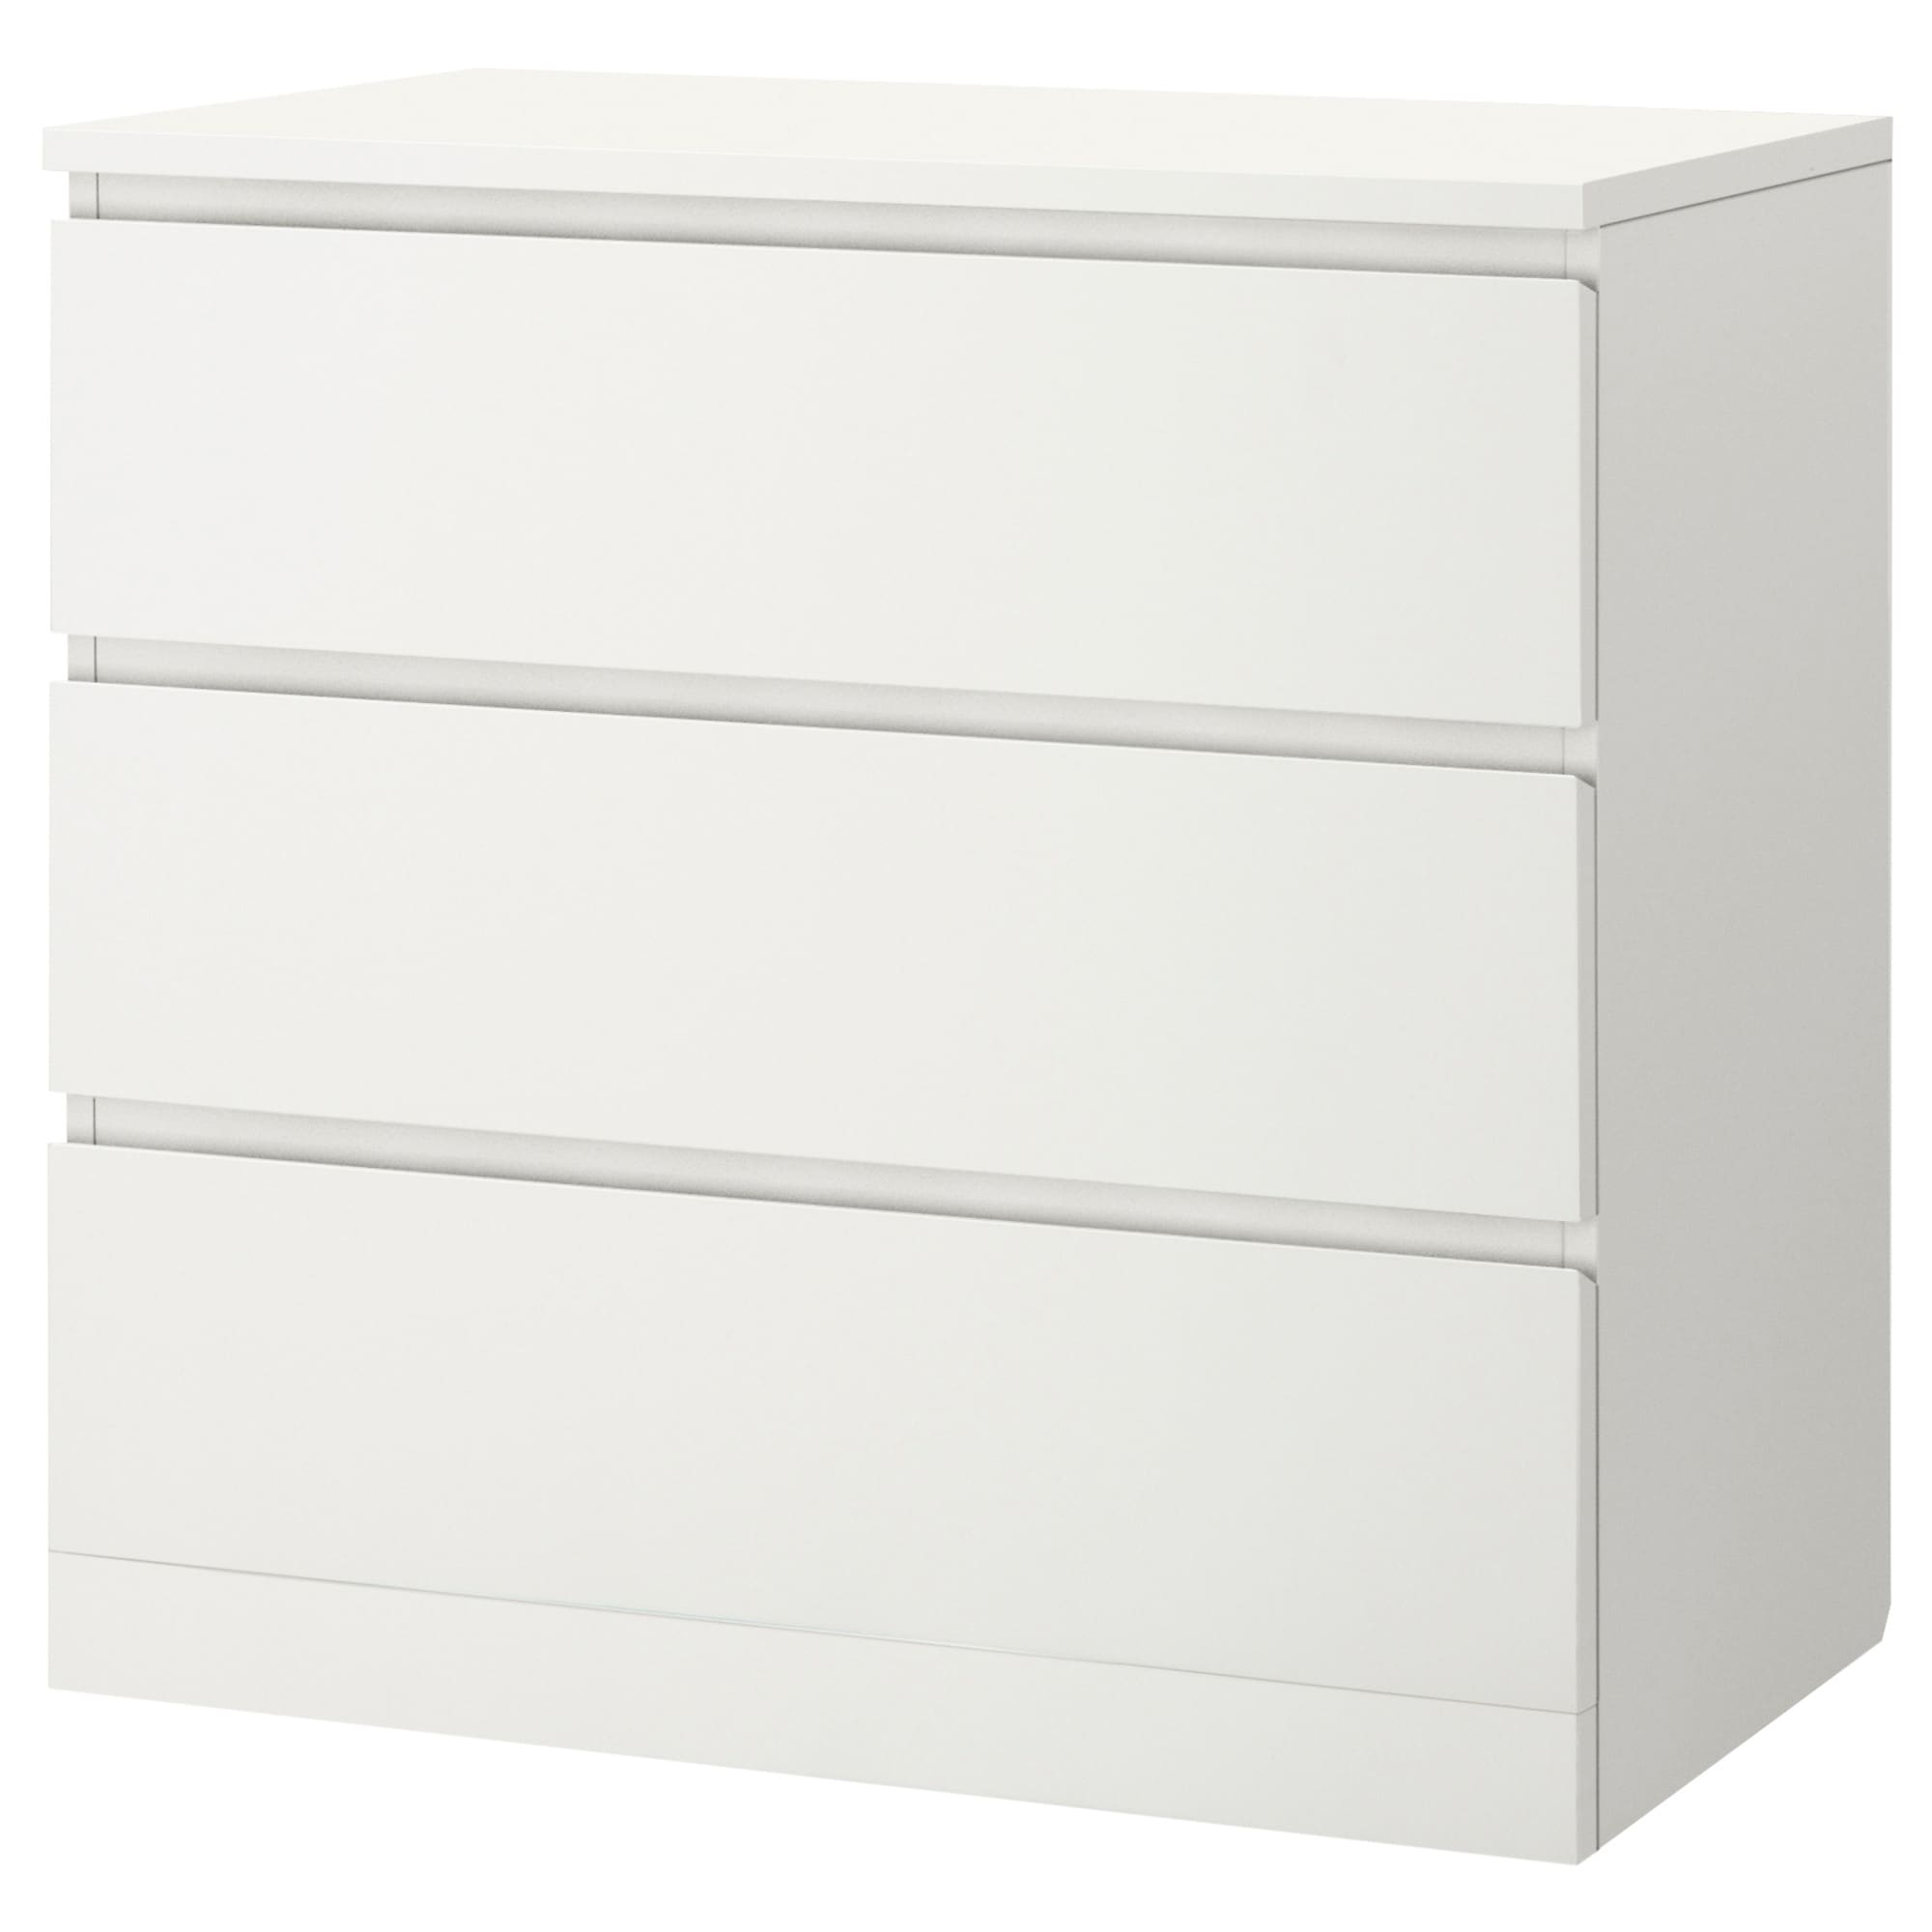 ikea malm white dresser bestdressers 2017. Black Bedroom Furniture Sets. Home Design Ideas